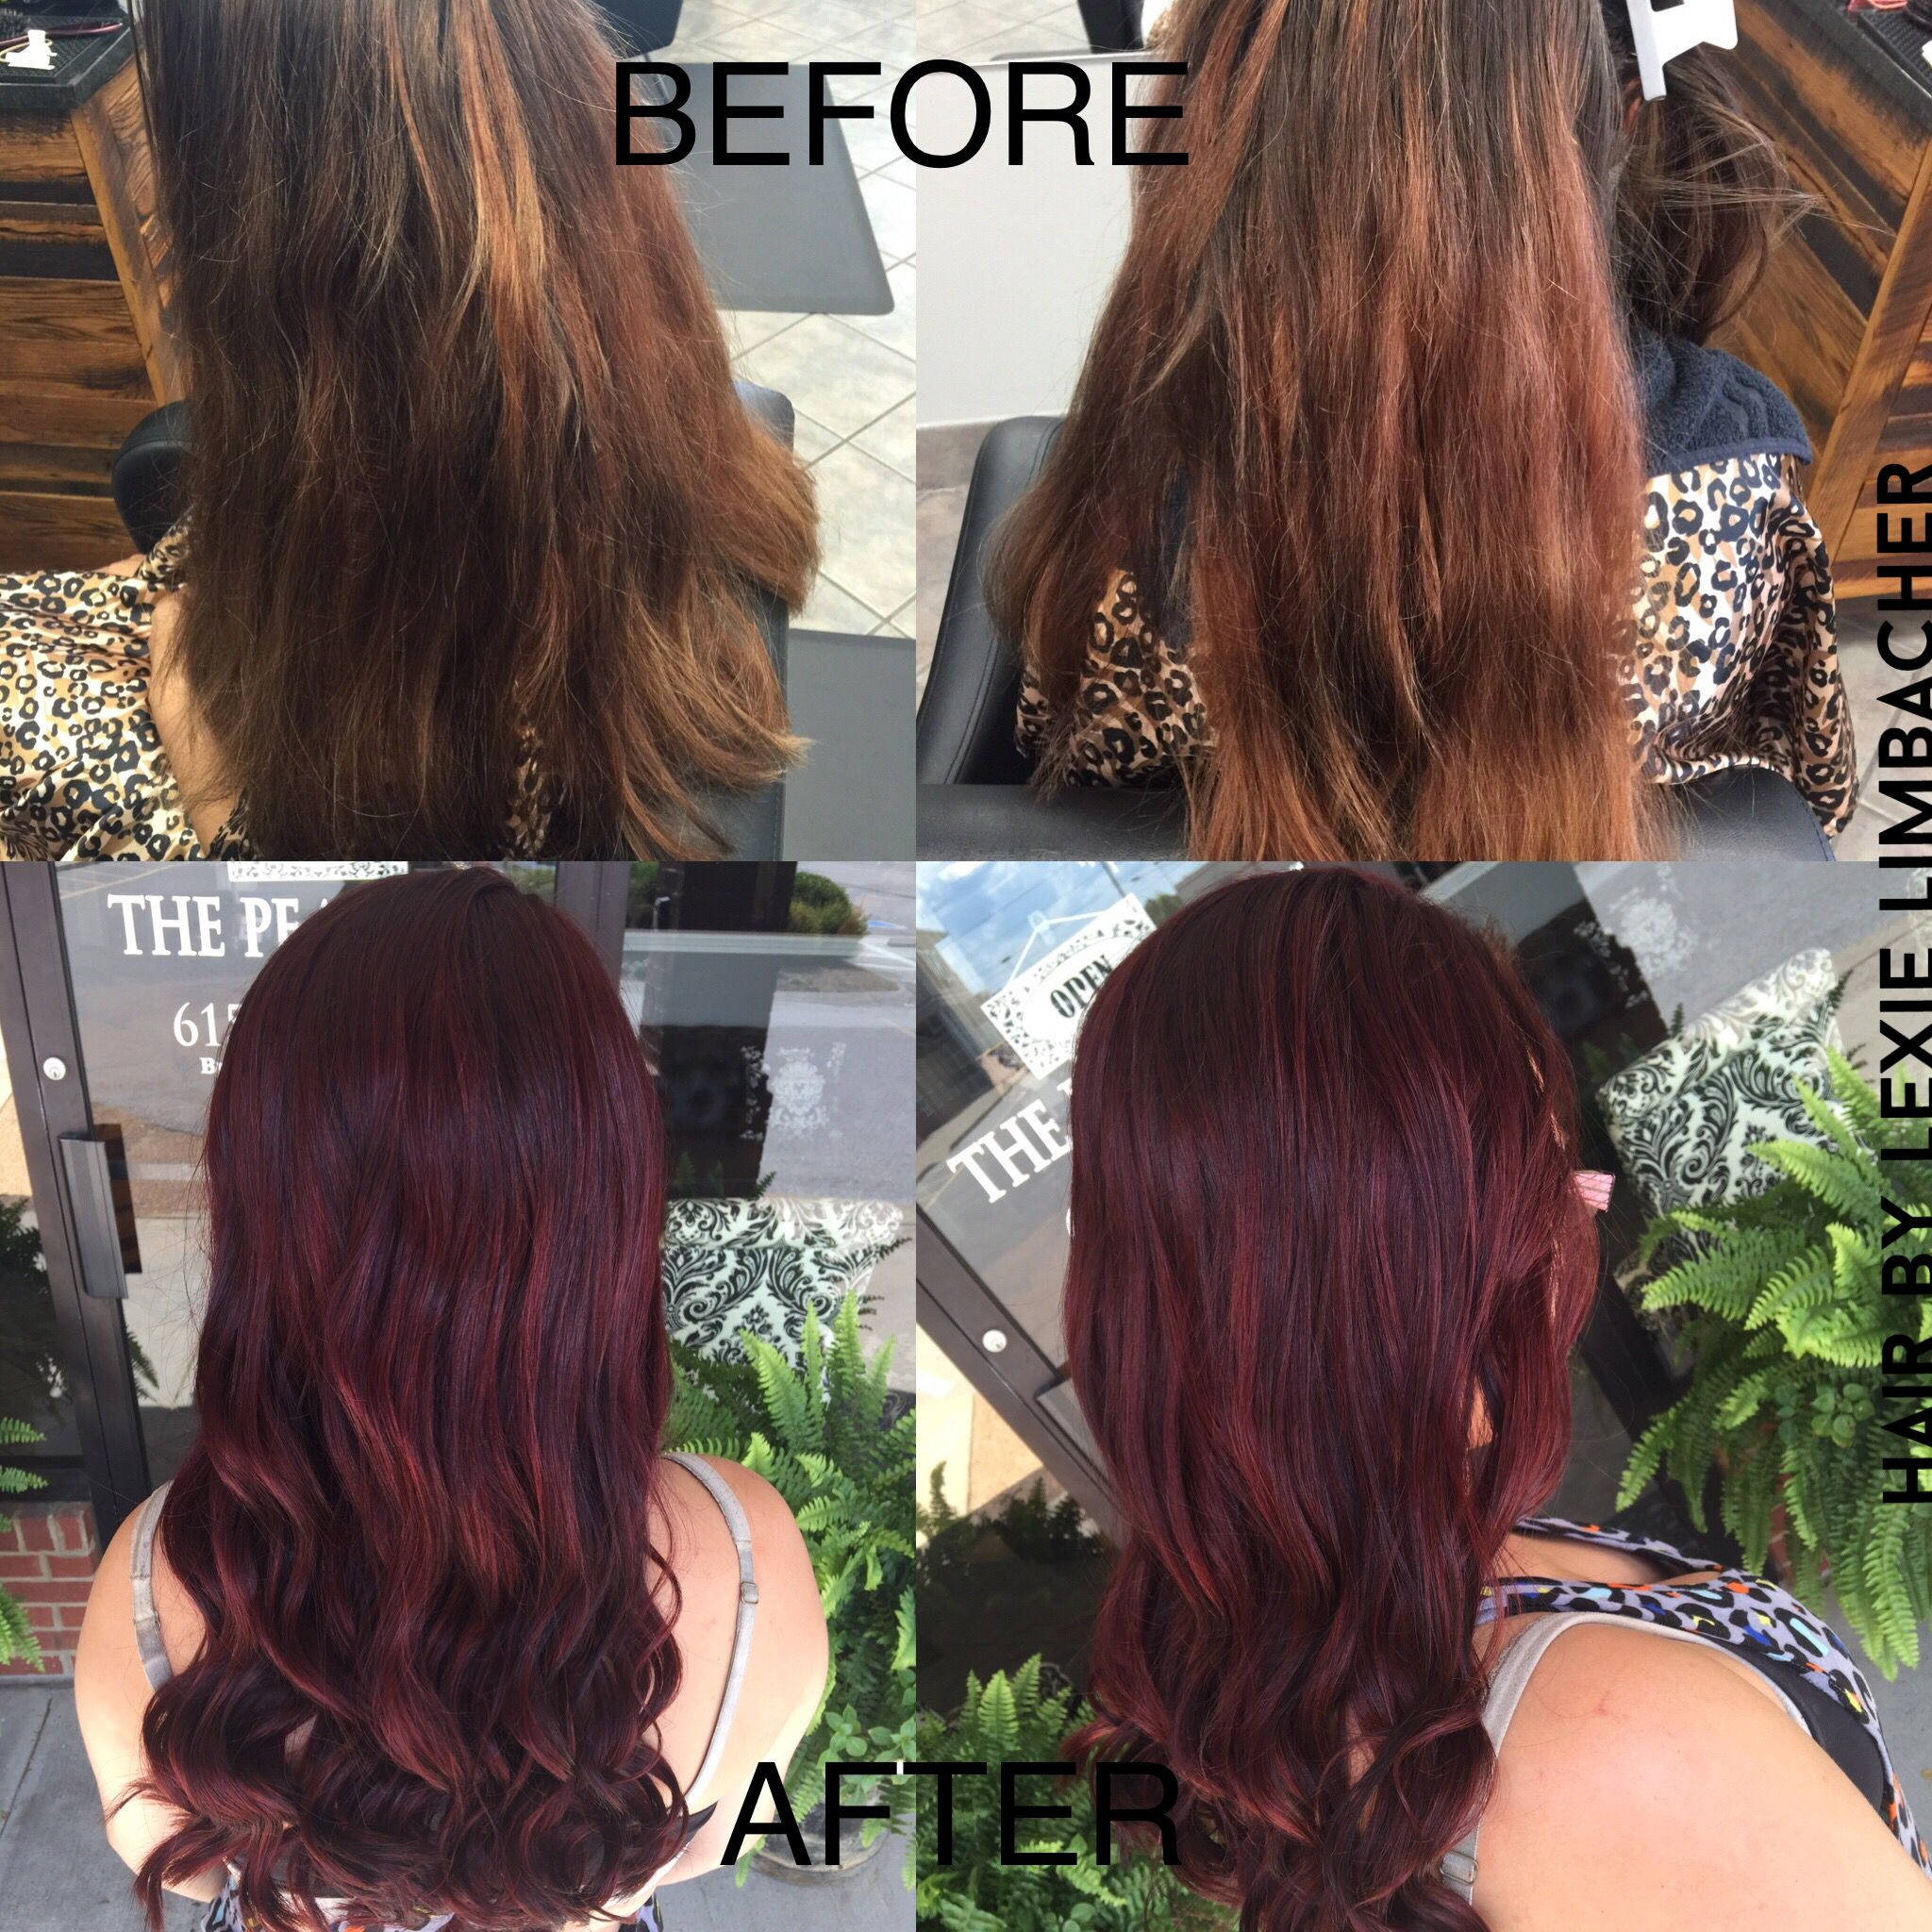 Beautiful Red Violet Color Using Redken 05rv In Shades Eq Gloss